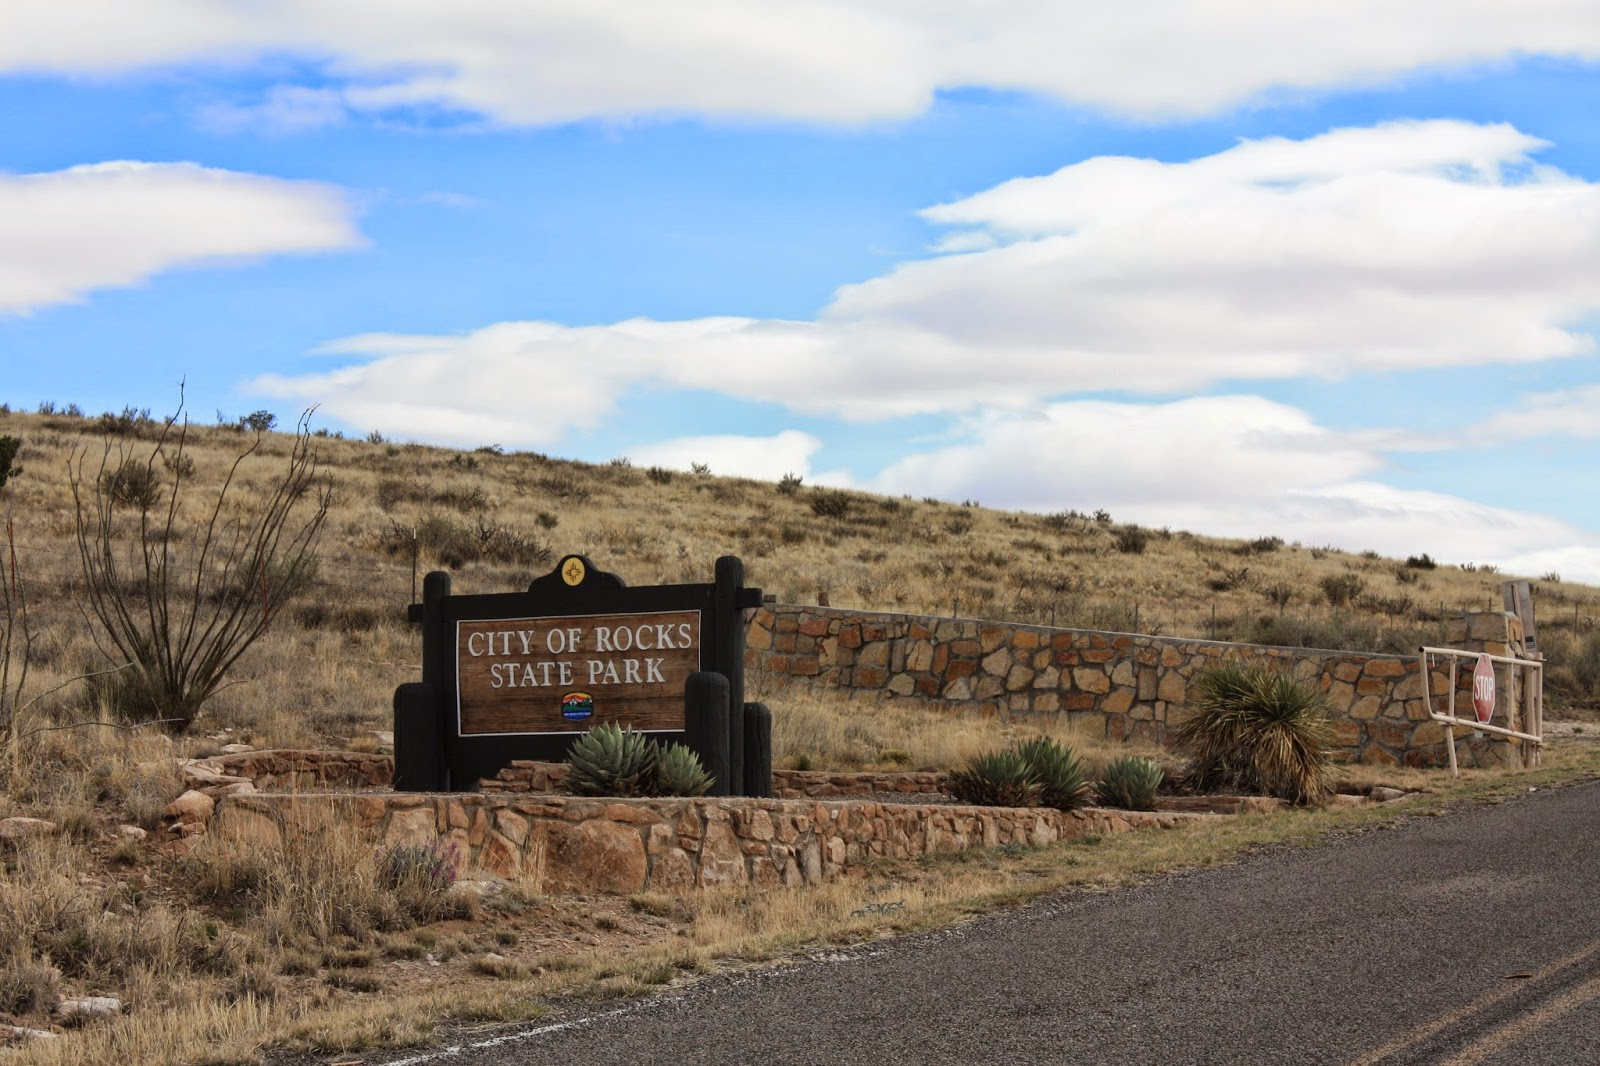 Sign at the entrance to City of Rocks State Park